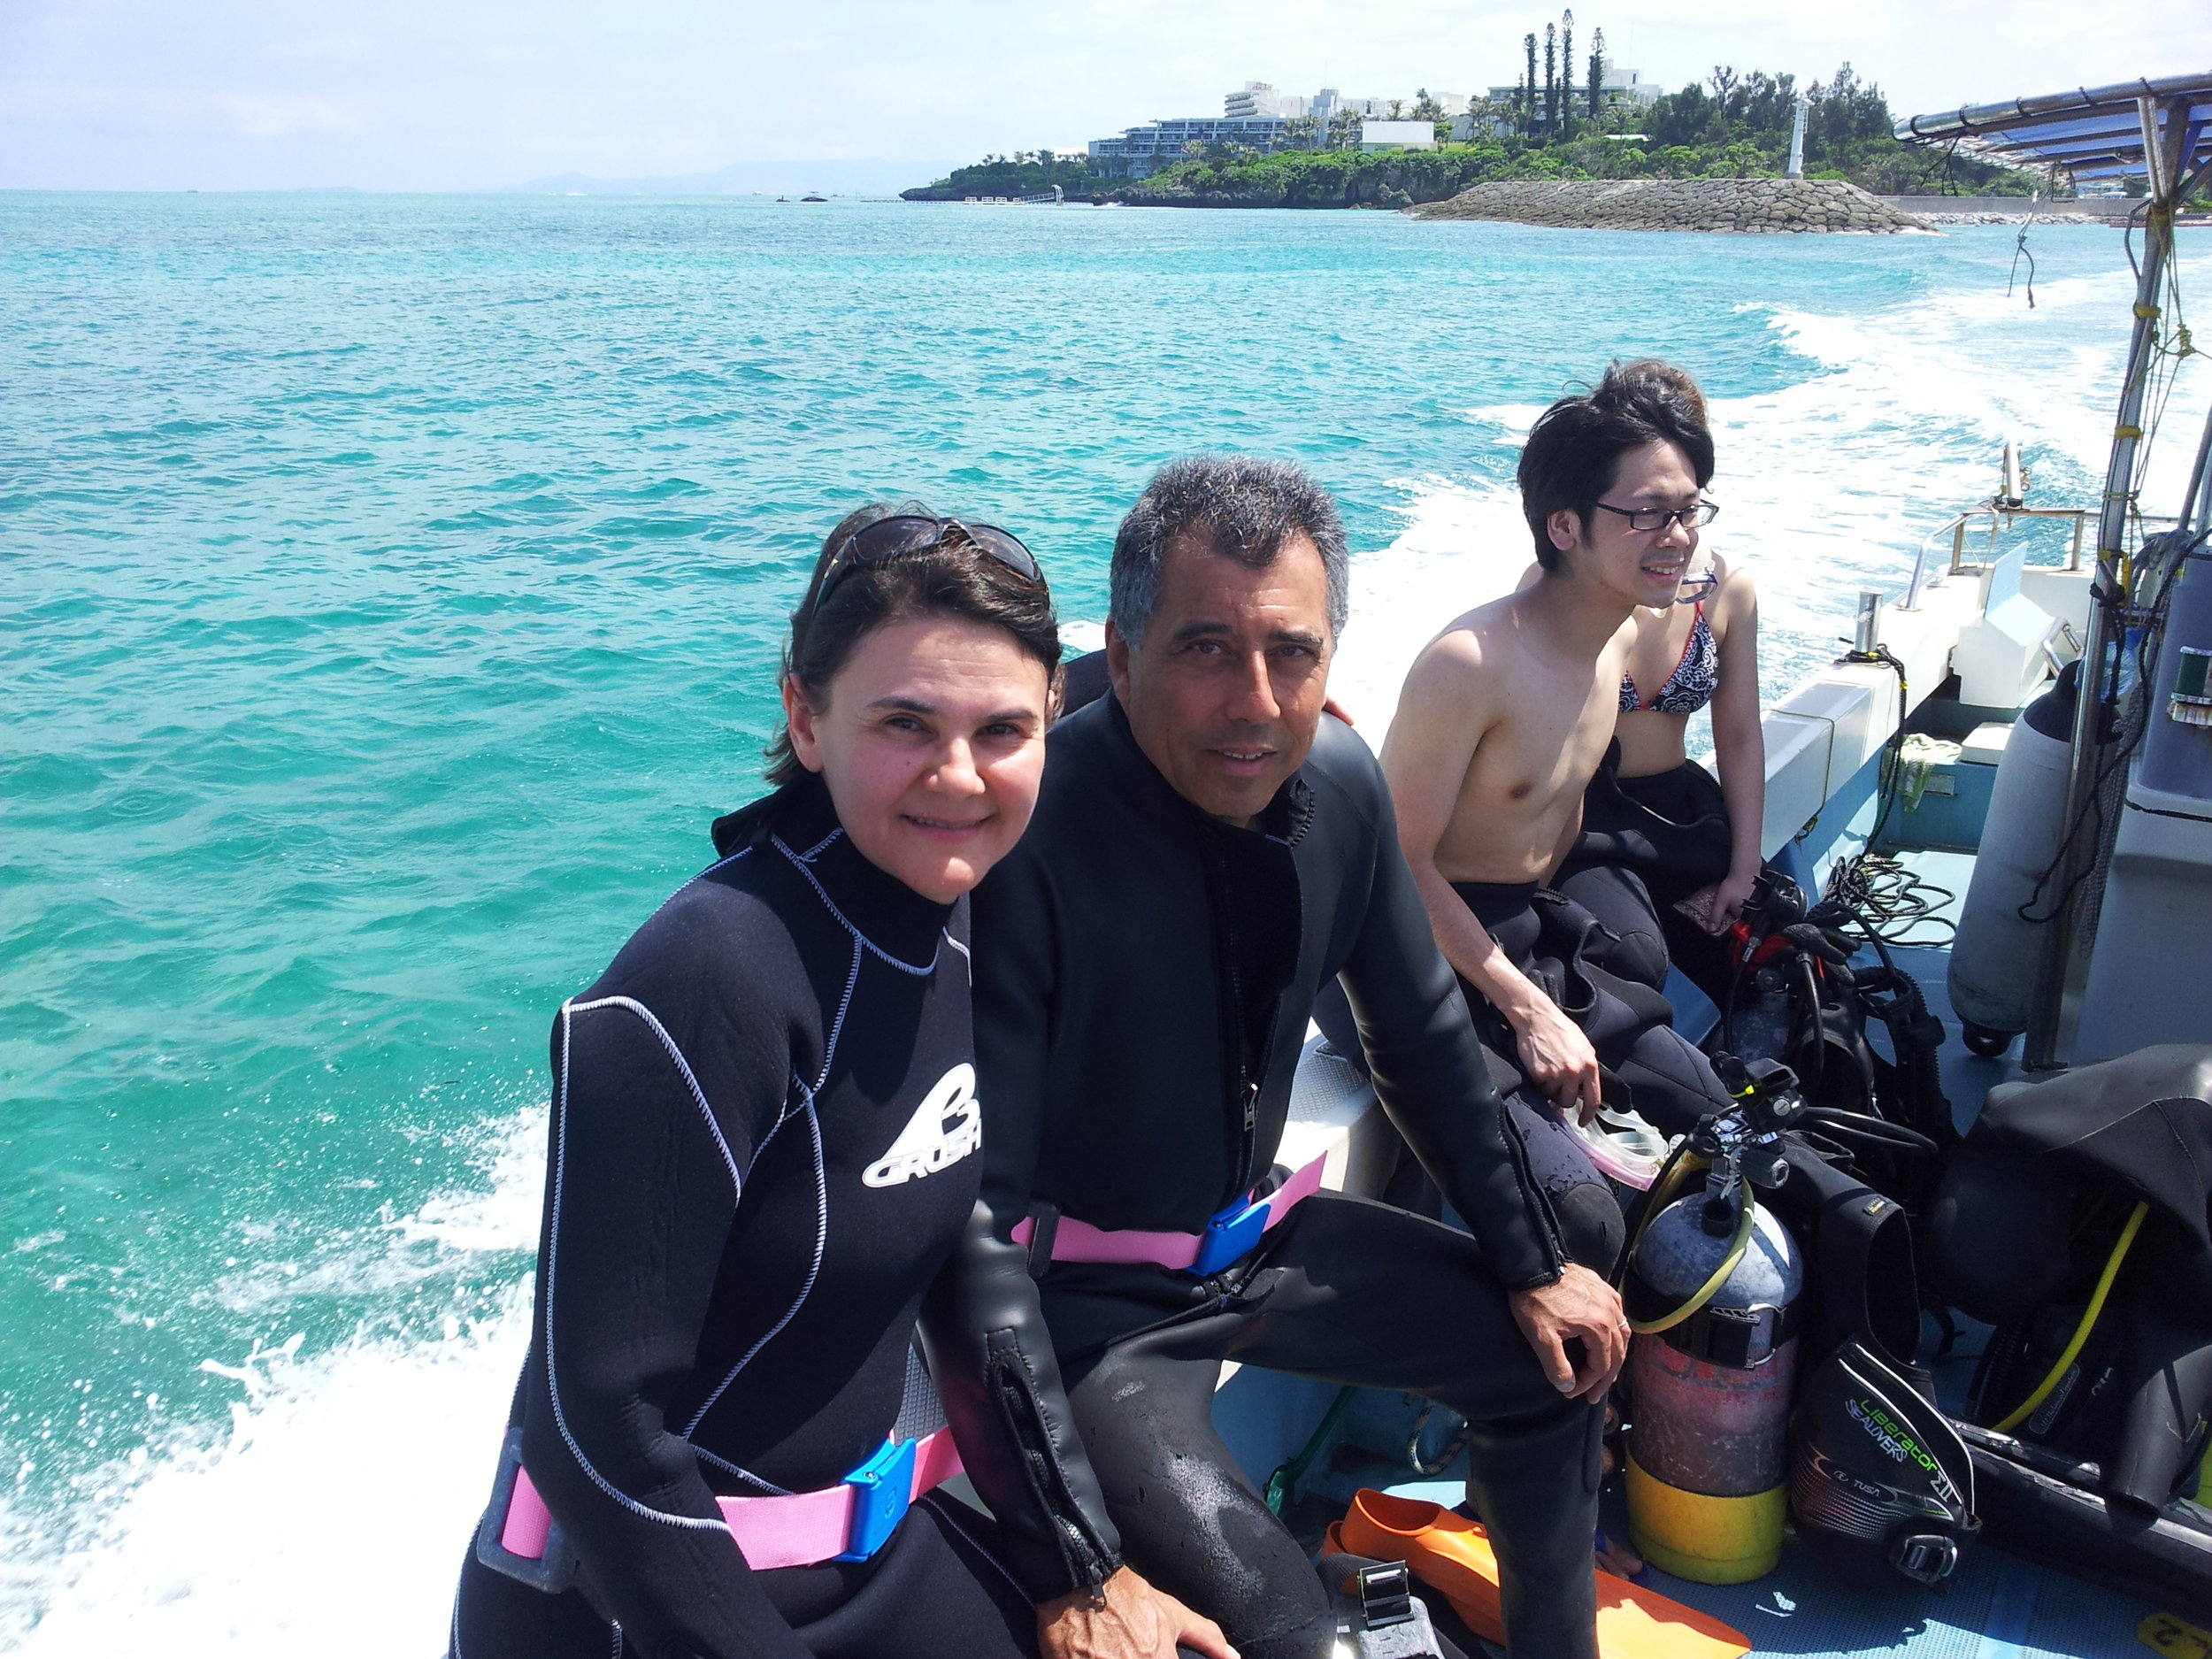 Clenia and Marcio on their way to a day of scuba diving in the Japanese Caribbean.